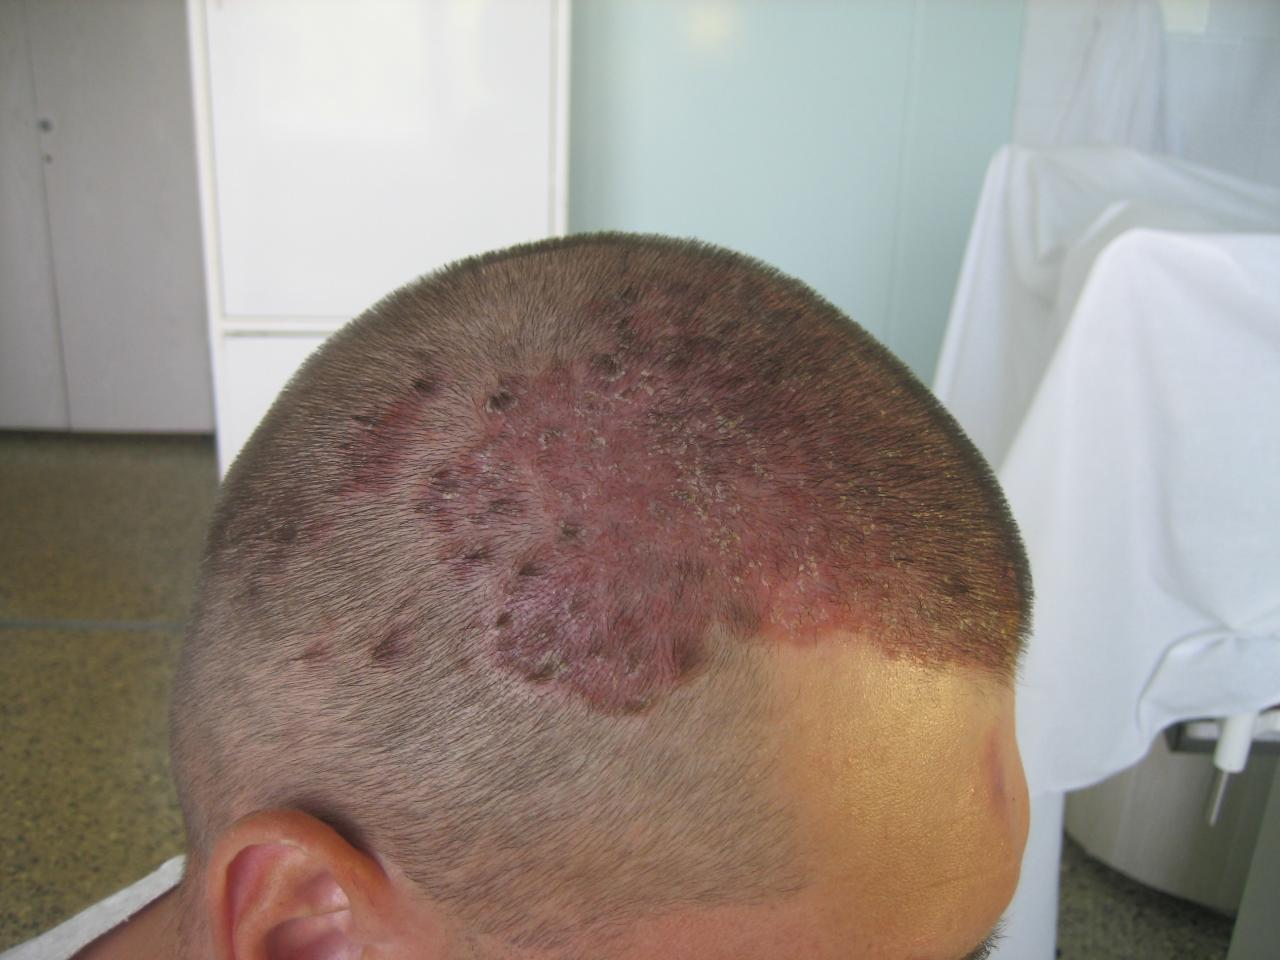 Photos of scalp psoriasis